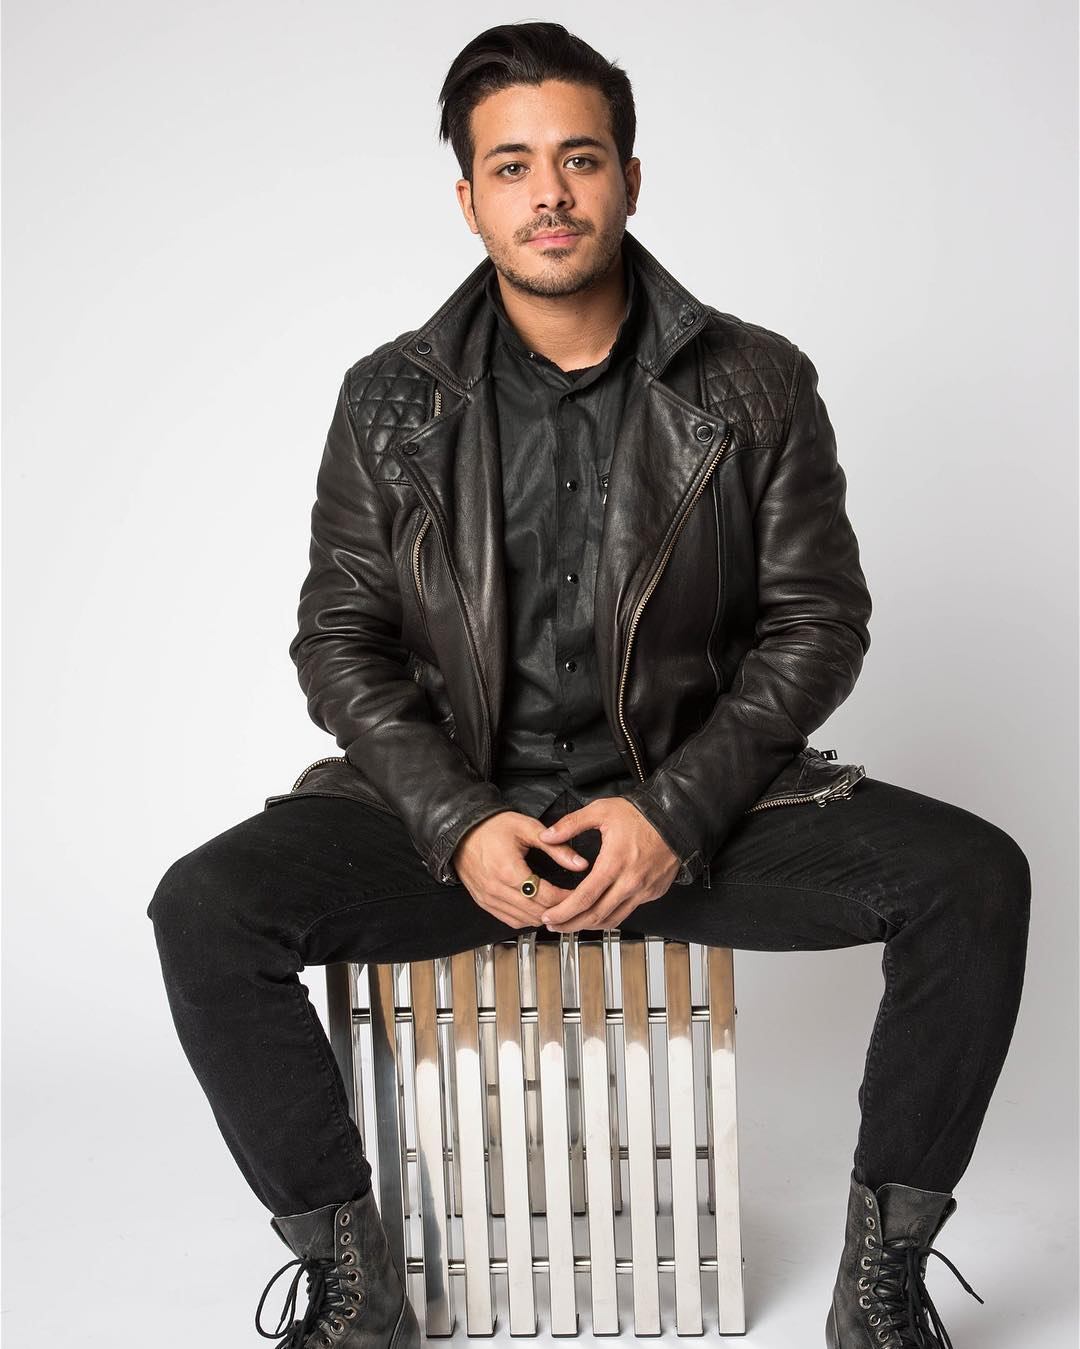 Christian Navarro is sitting on a chair